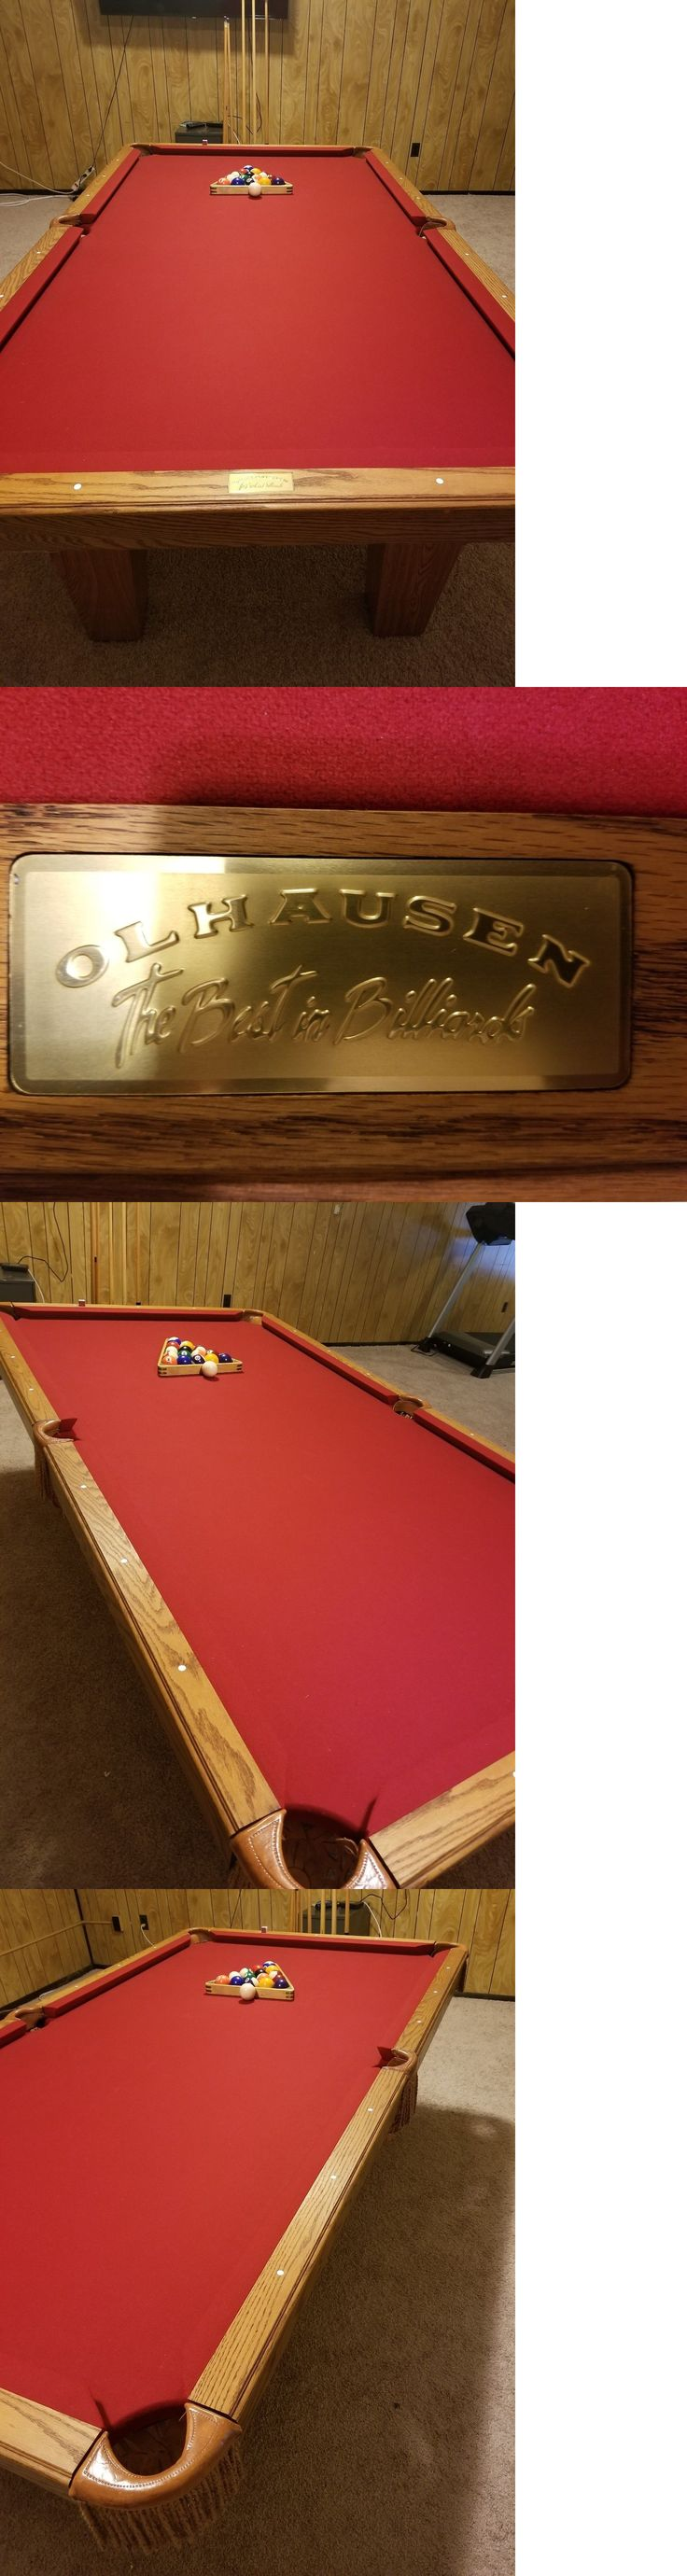 Tables 21213: Pool Table Olhausen 8Ft -> BUY IT NOW ONLY: $850 on eBay!